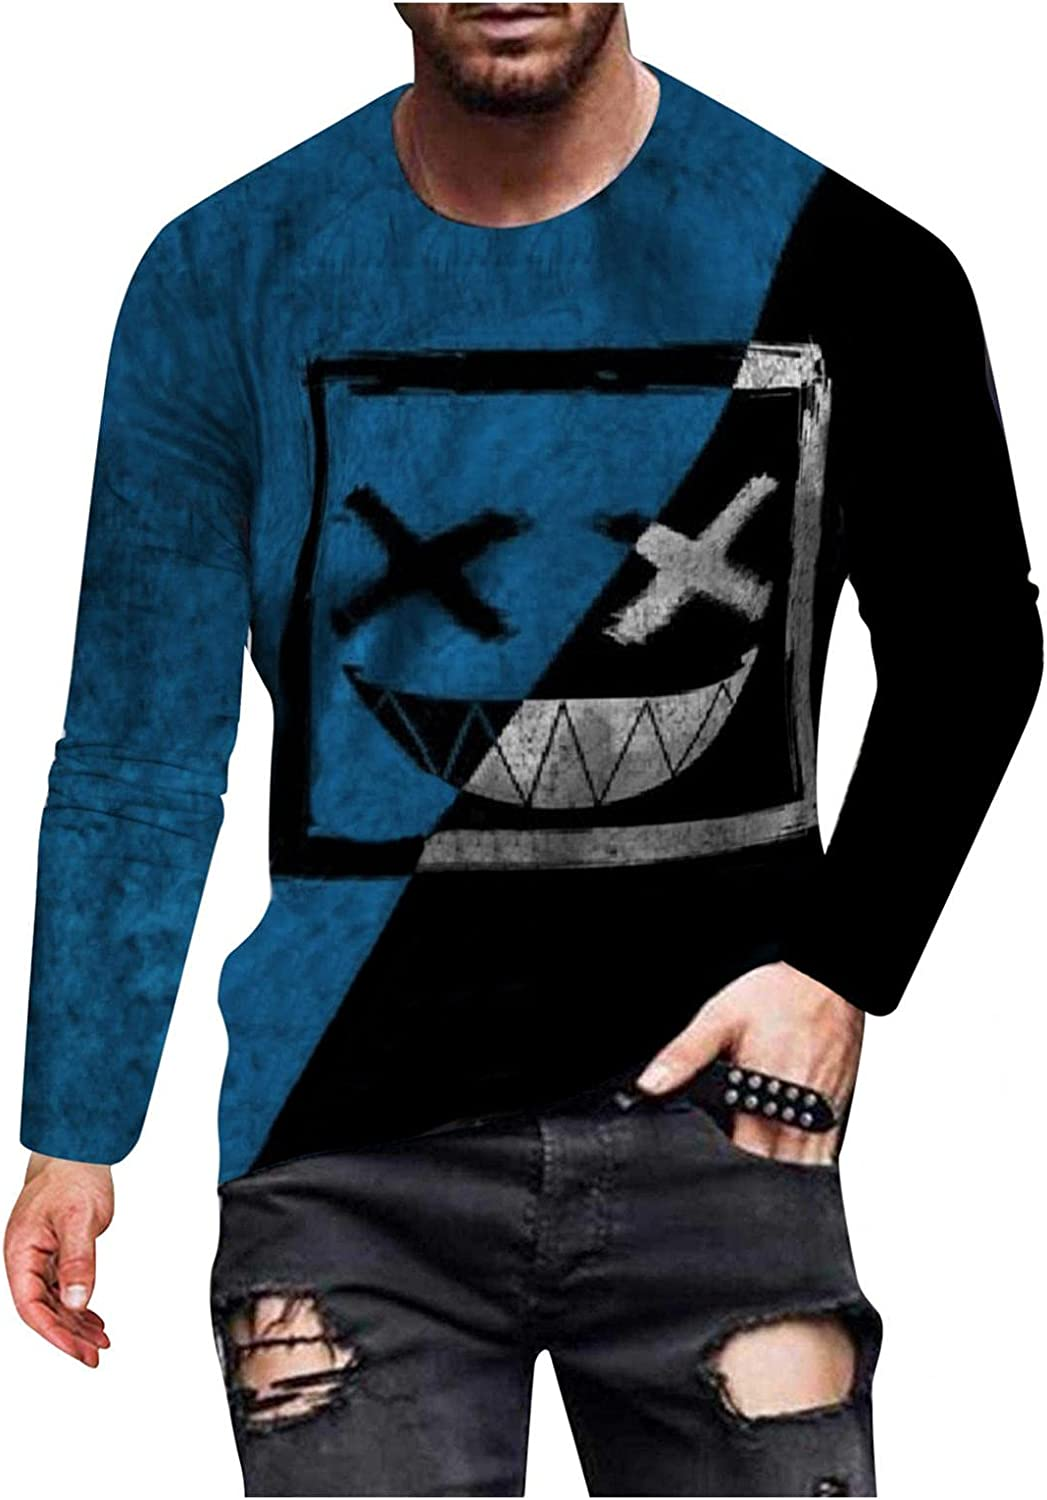 Tops for Men Novelty 3D Print Graphic Shirts Long Sleeve Crewneck Pullover Sweatershirt Lightweight Breathable Blouse